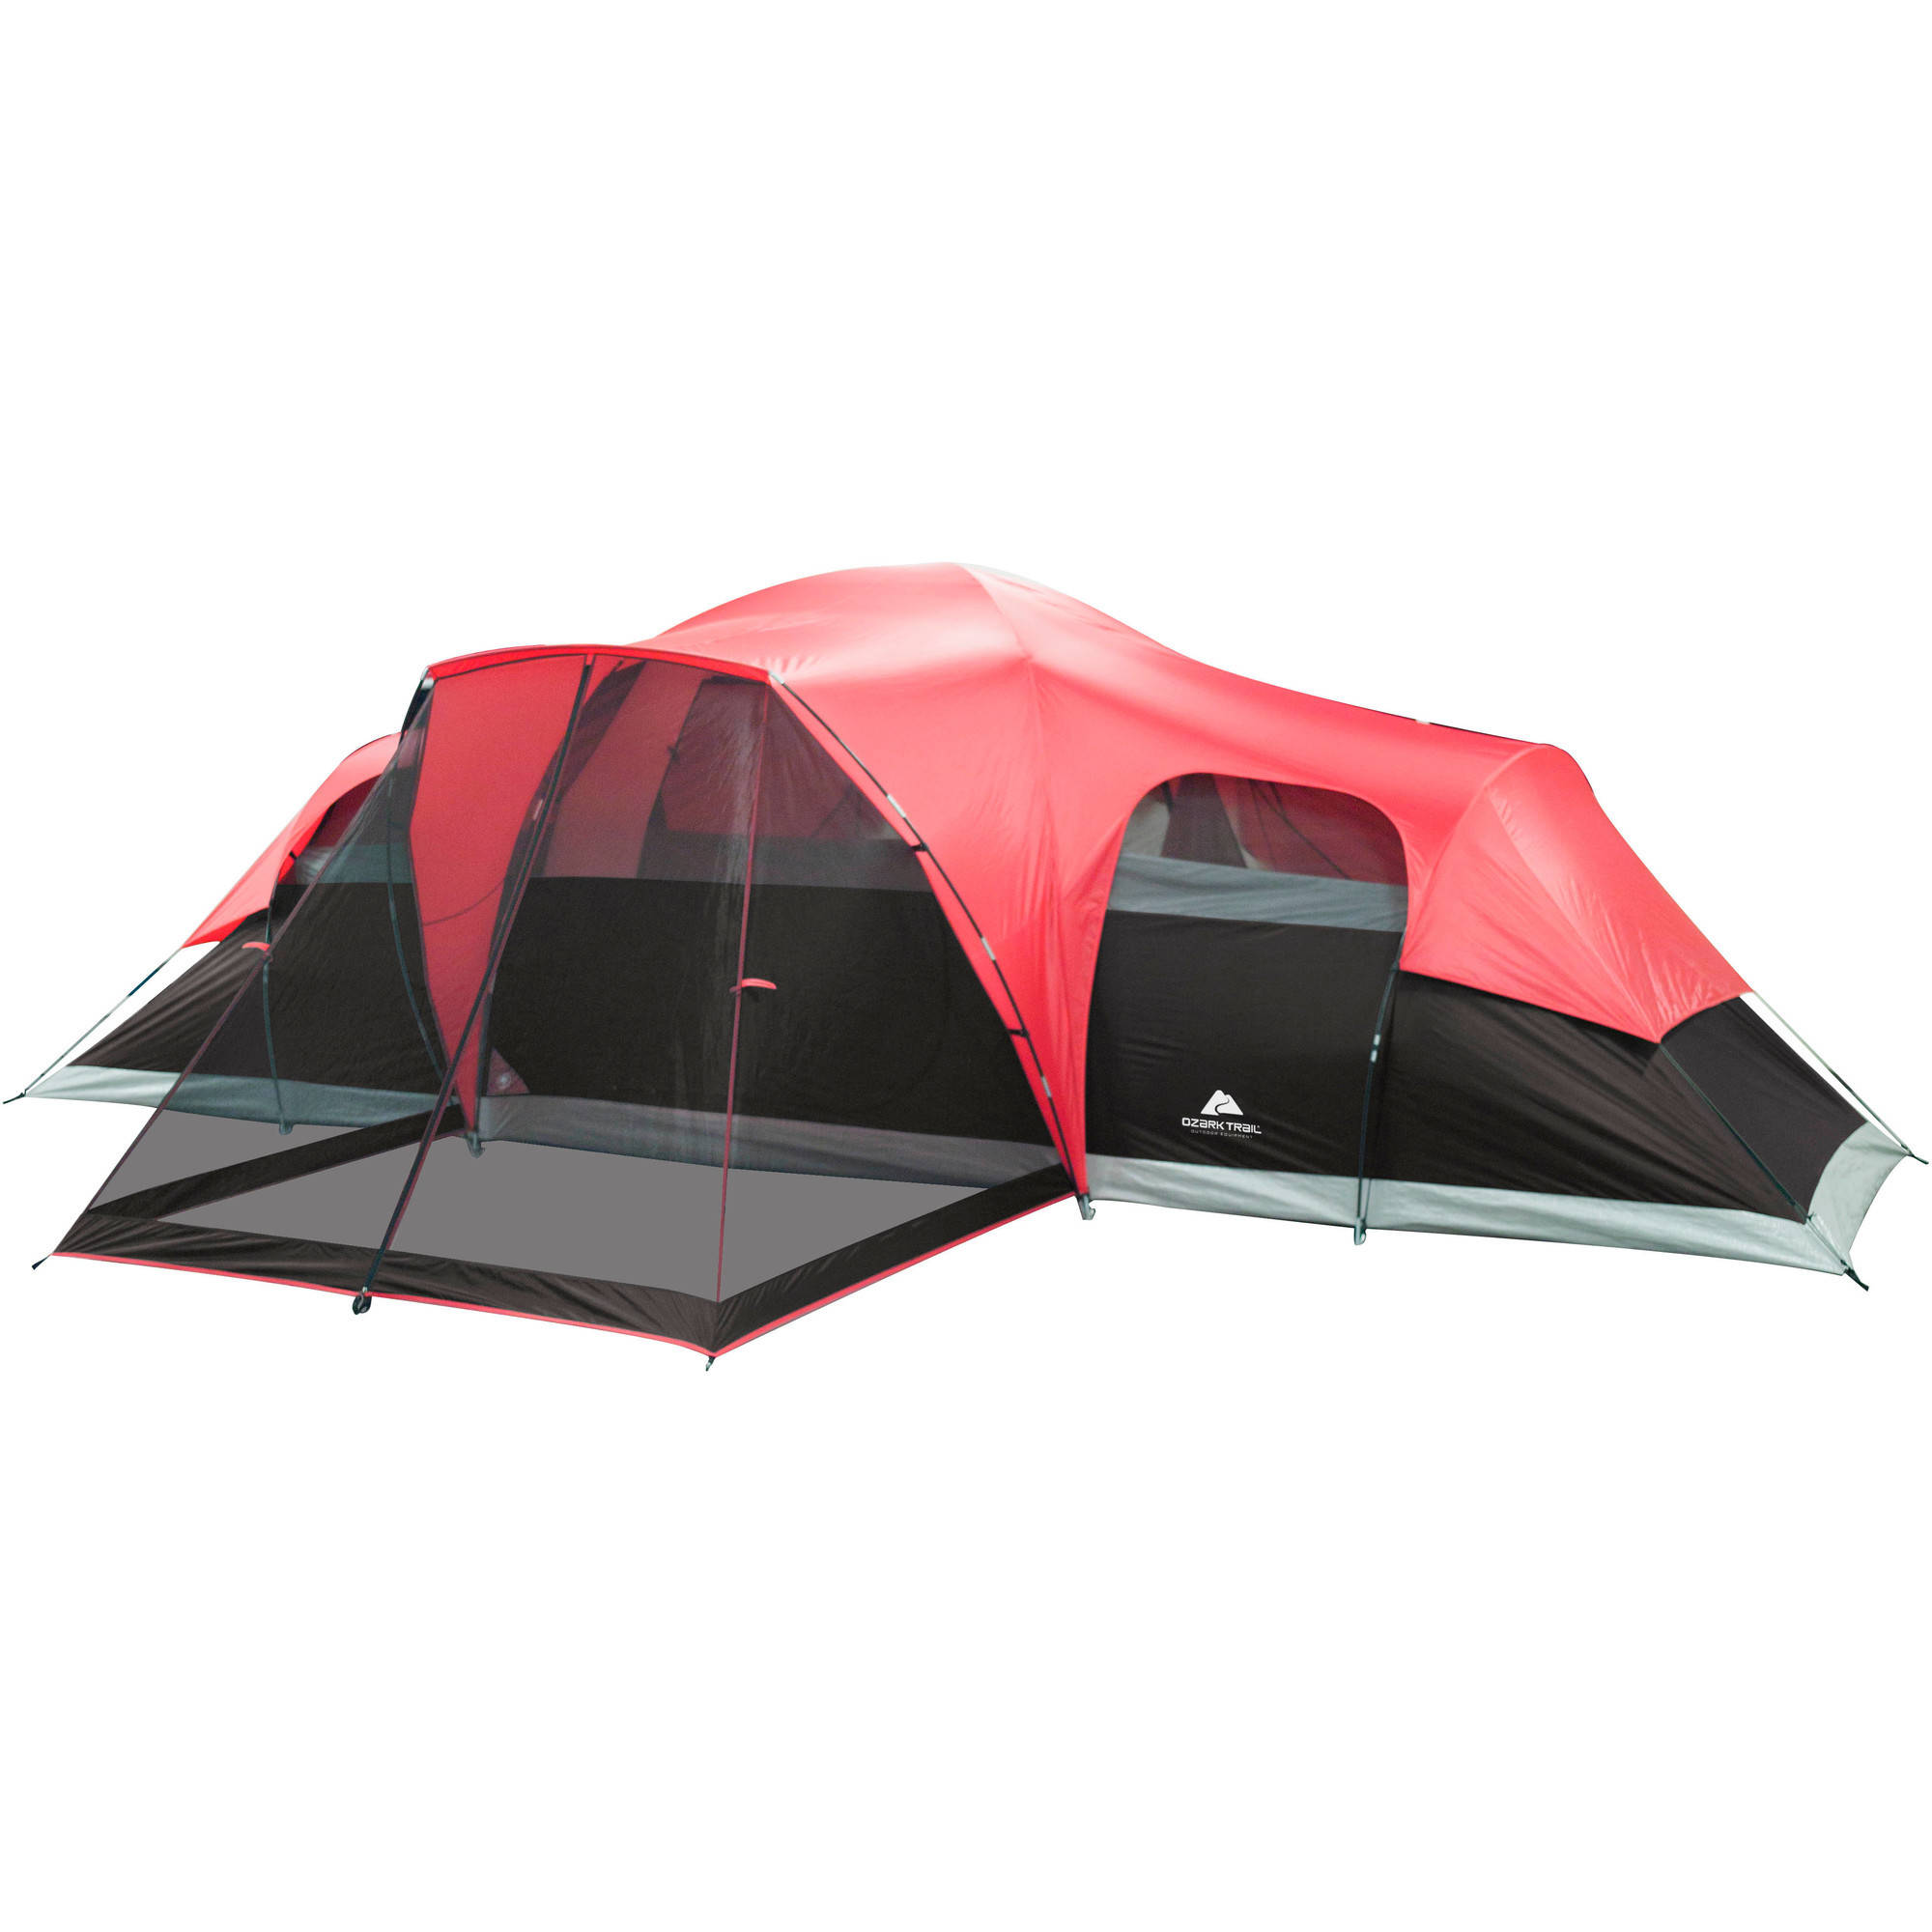 Buy Ozark Trail Family Tent, Sleeps 10 Review